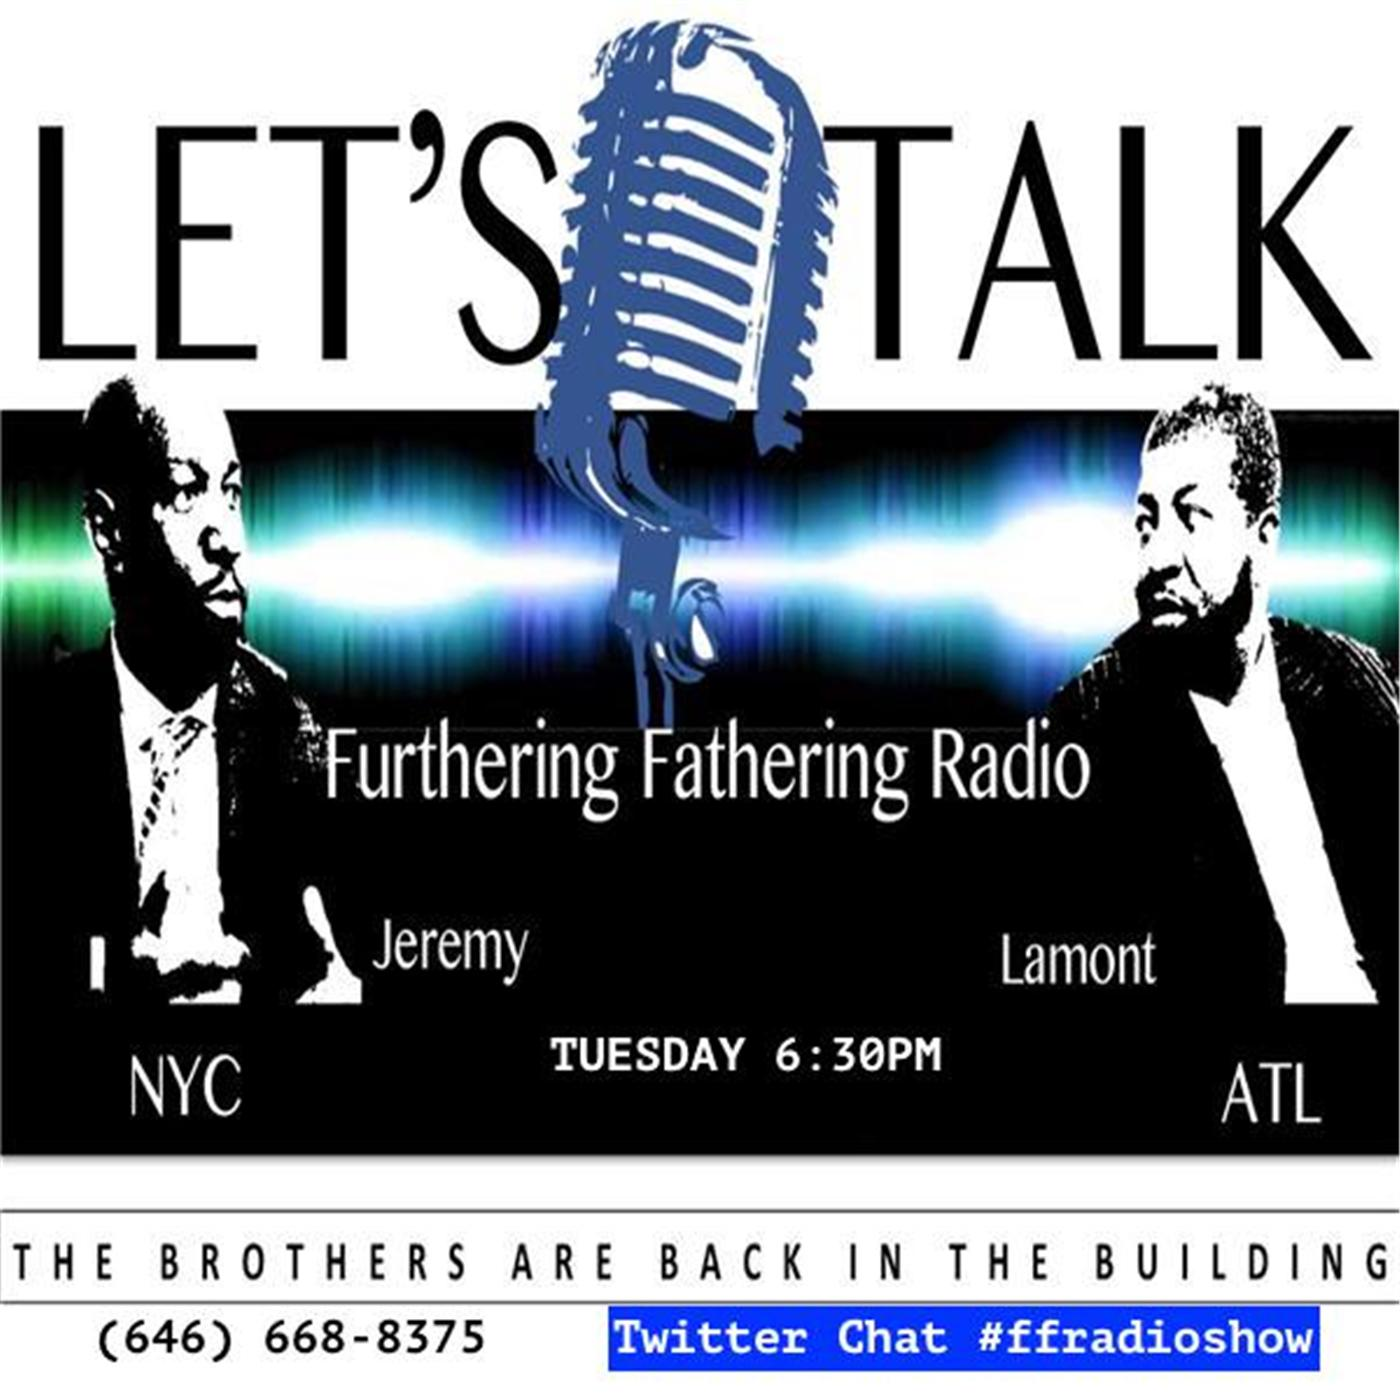 Furthering Fathering Radio